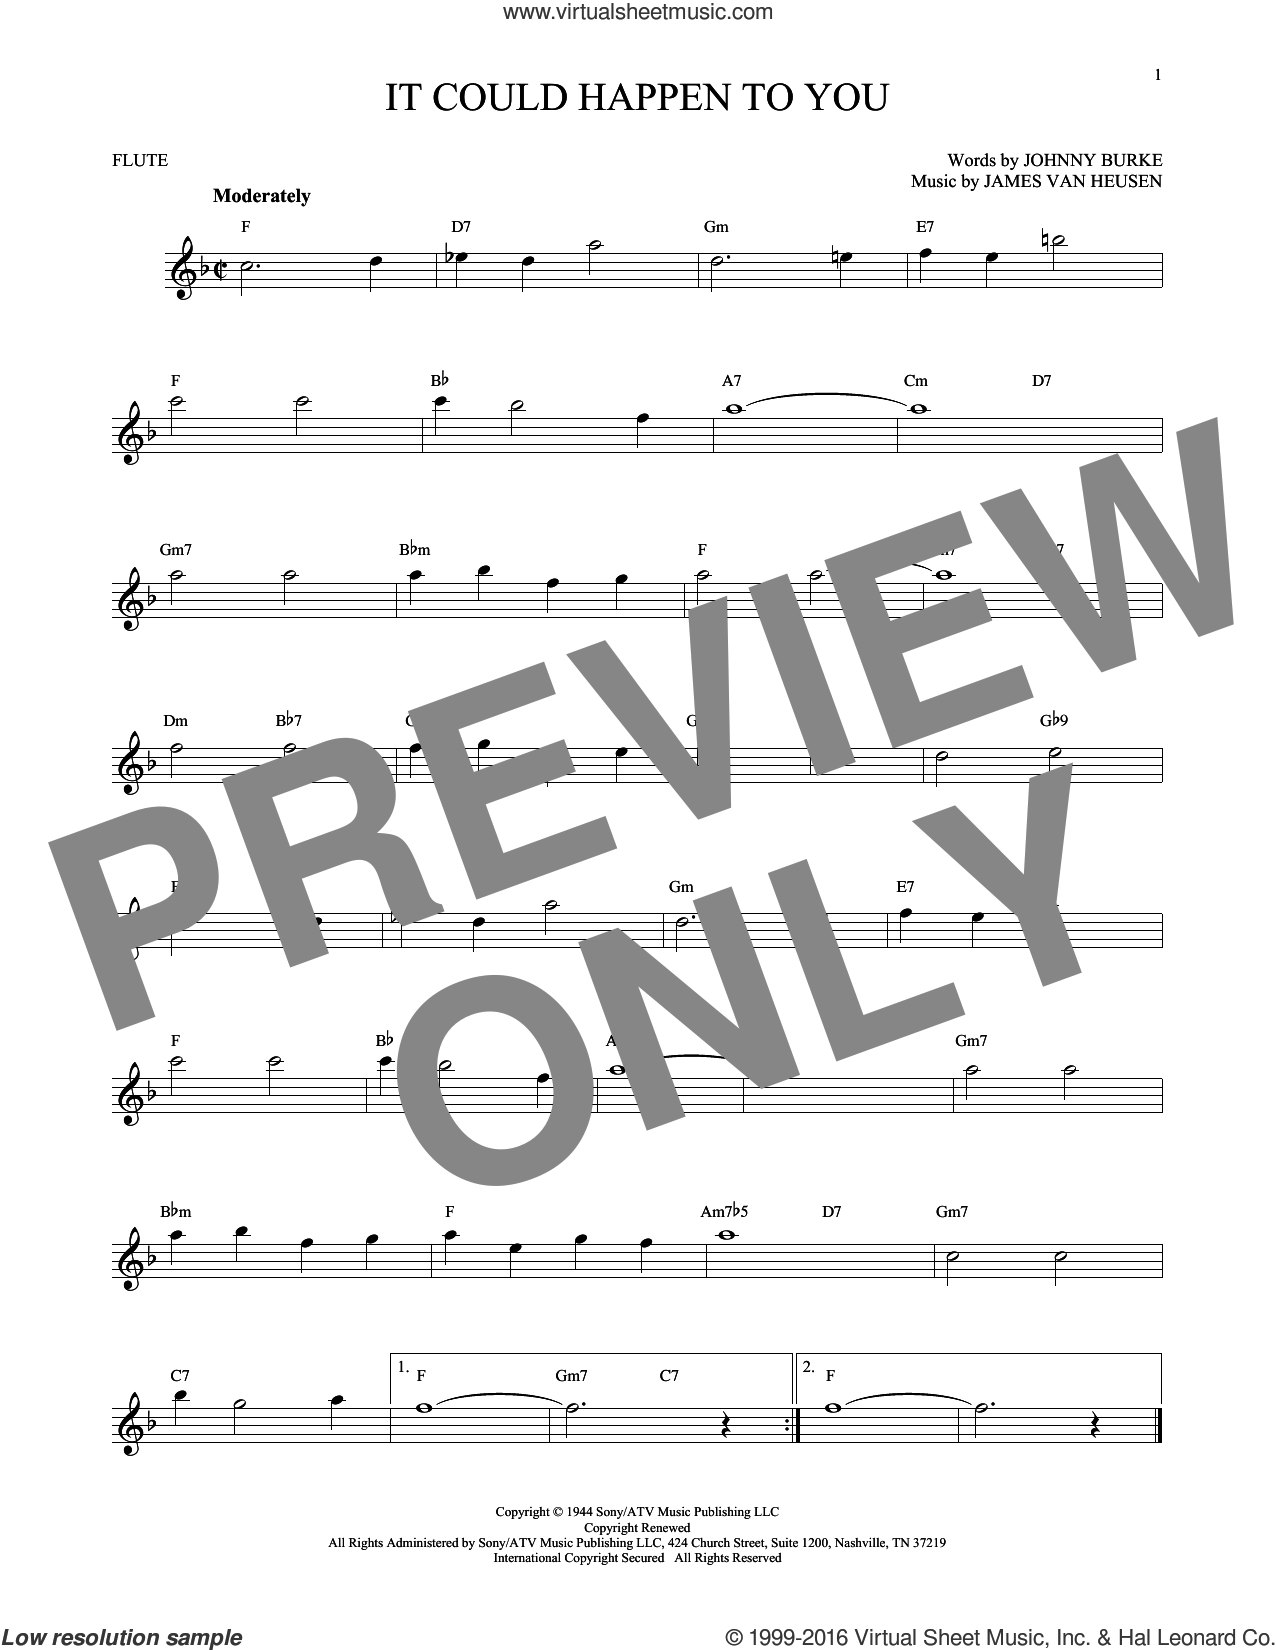 It Could Happen To You sheet music for flute solo by John Burke